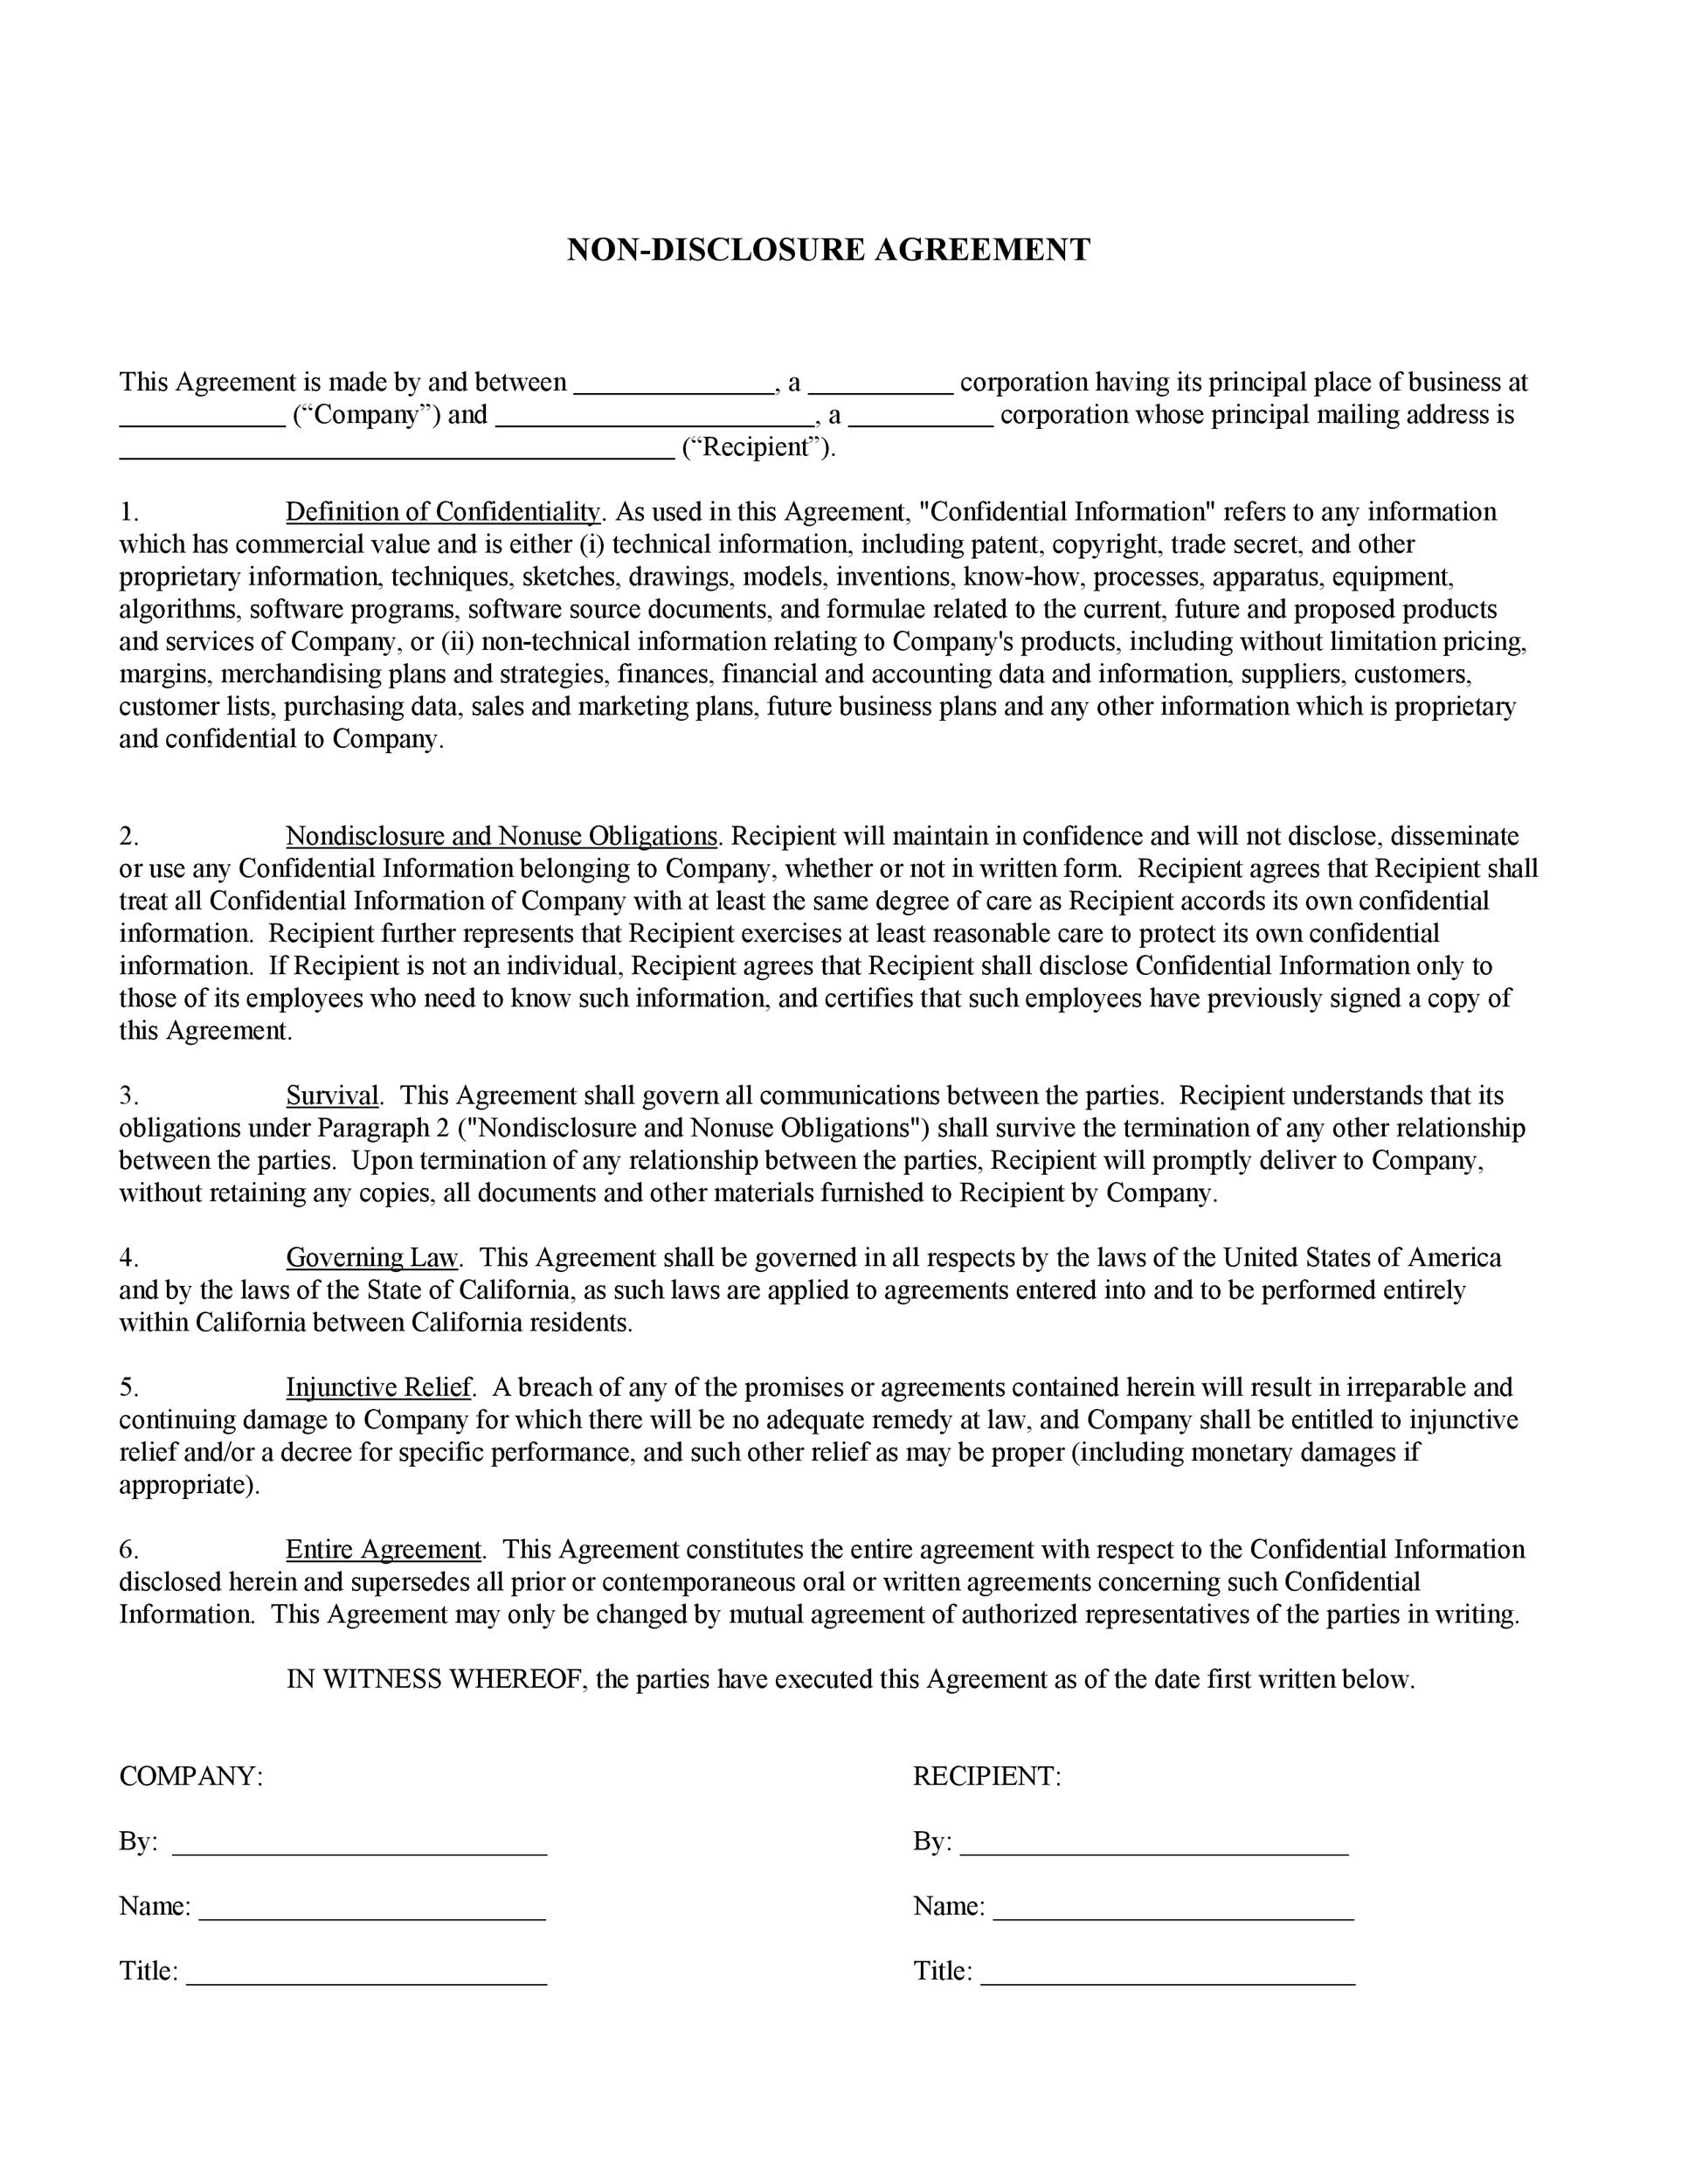 Printable Non Disclosure Agreement Template 03  Free Printable Non Disclosure Agreement